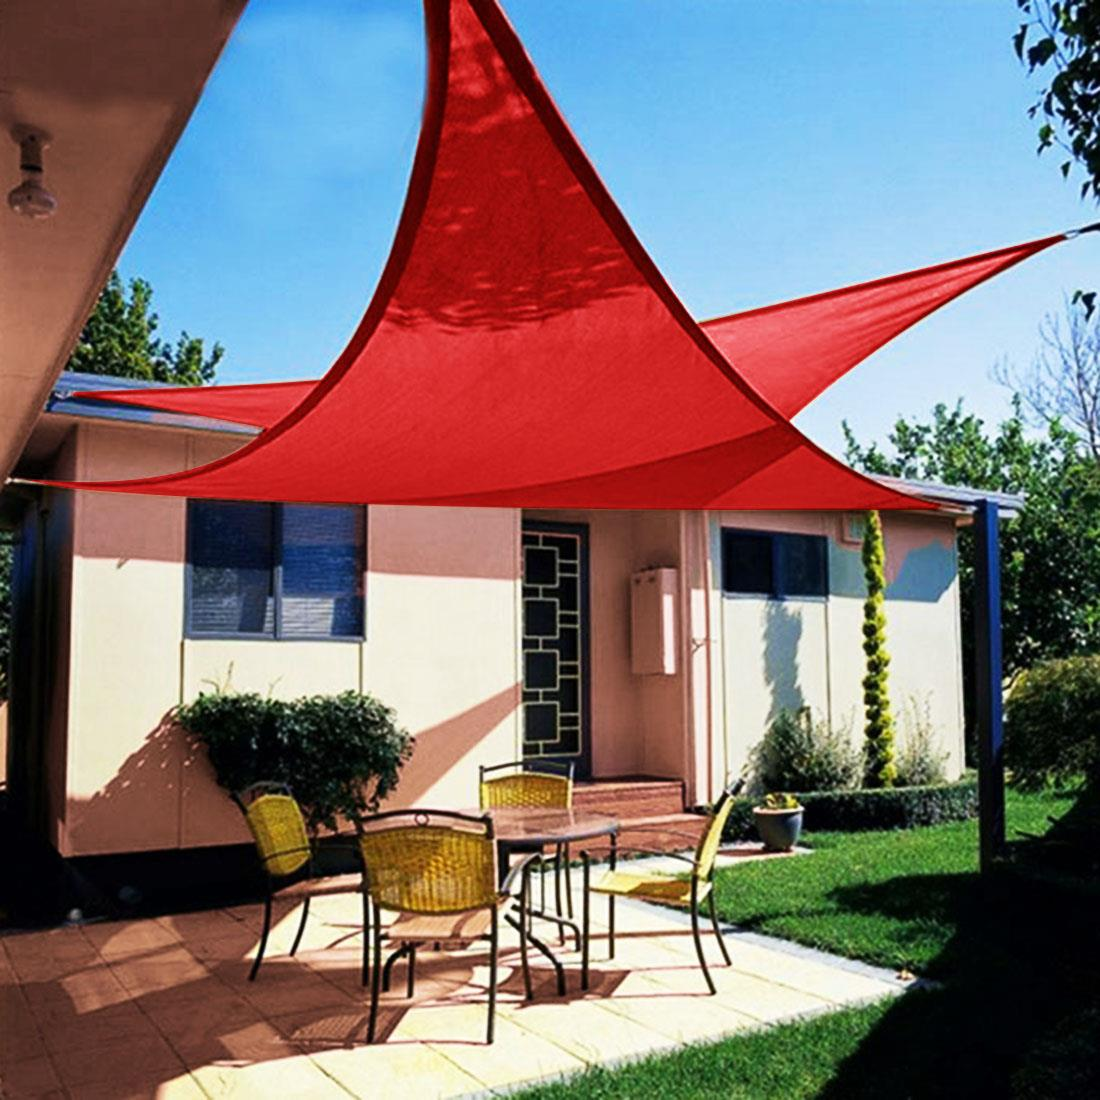 Quictent 12 18 20 FT Triangle Sun Shade